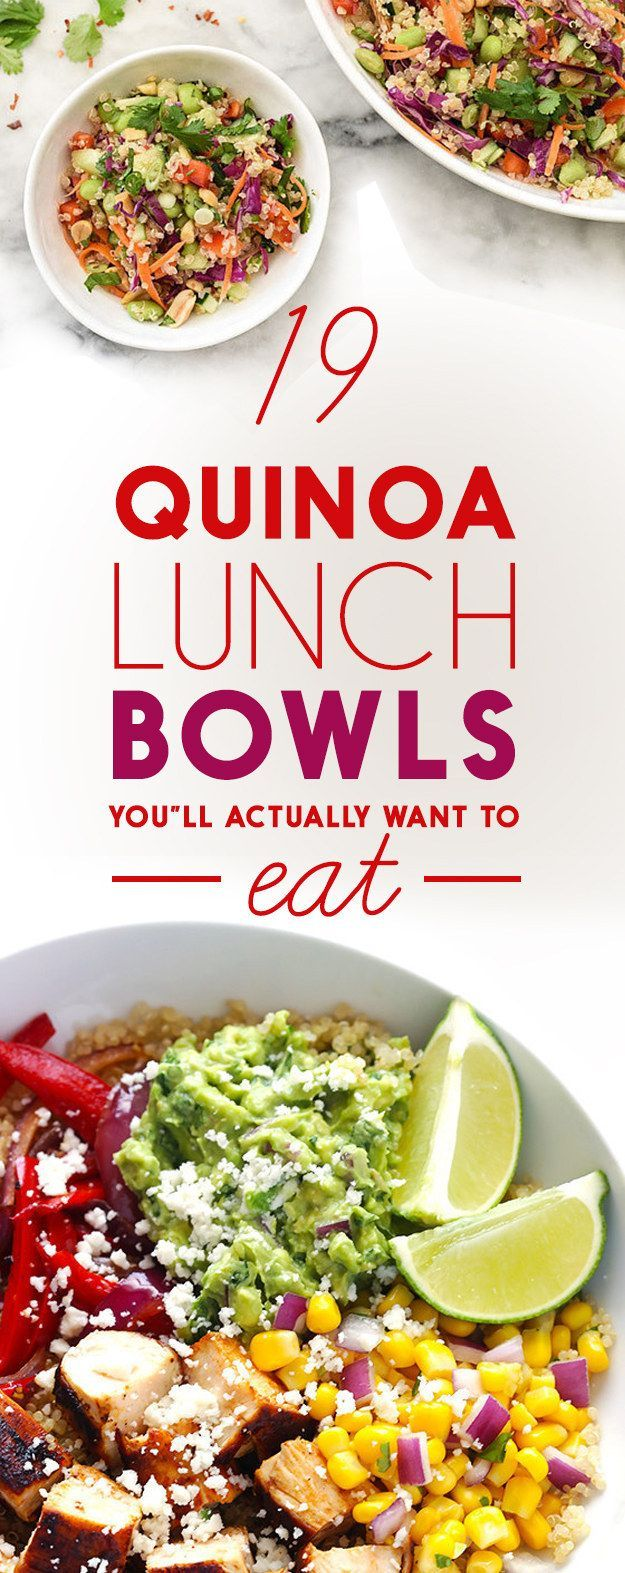 Quinoa bowls are a great way to get your daily dose of protein and by throwing various vegetables and other ingredients they make for a healthy and filling lunch. #quinoa #bowls #healthy                                                                                                                                                                                 More